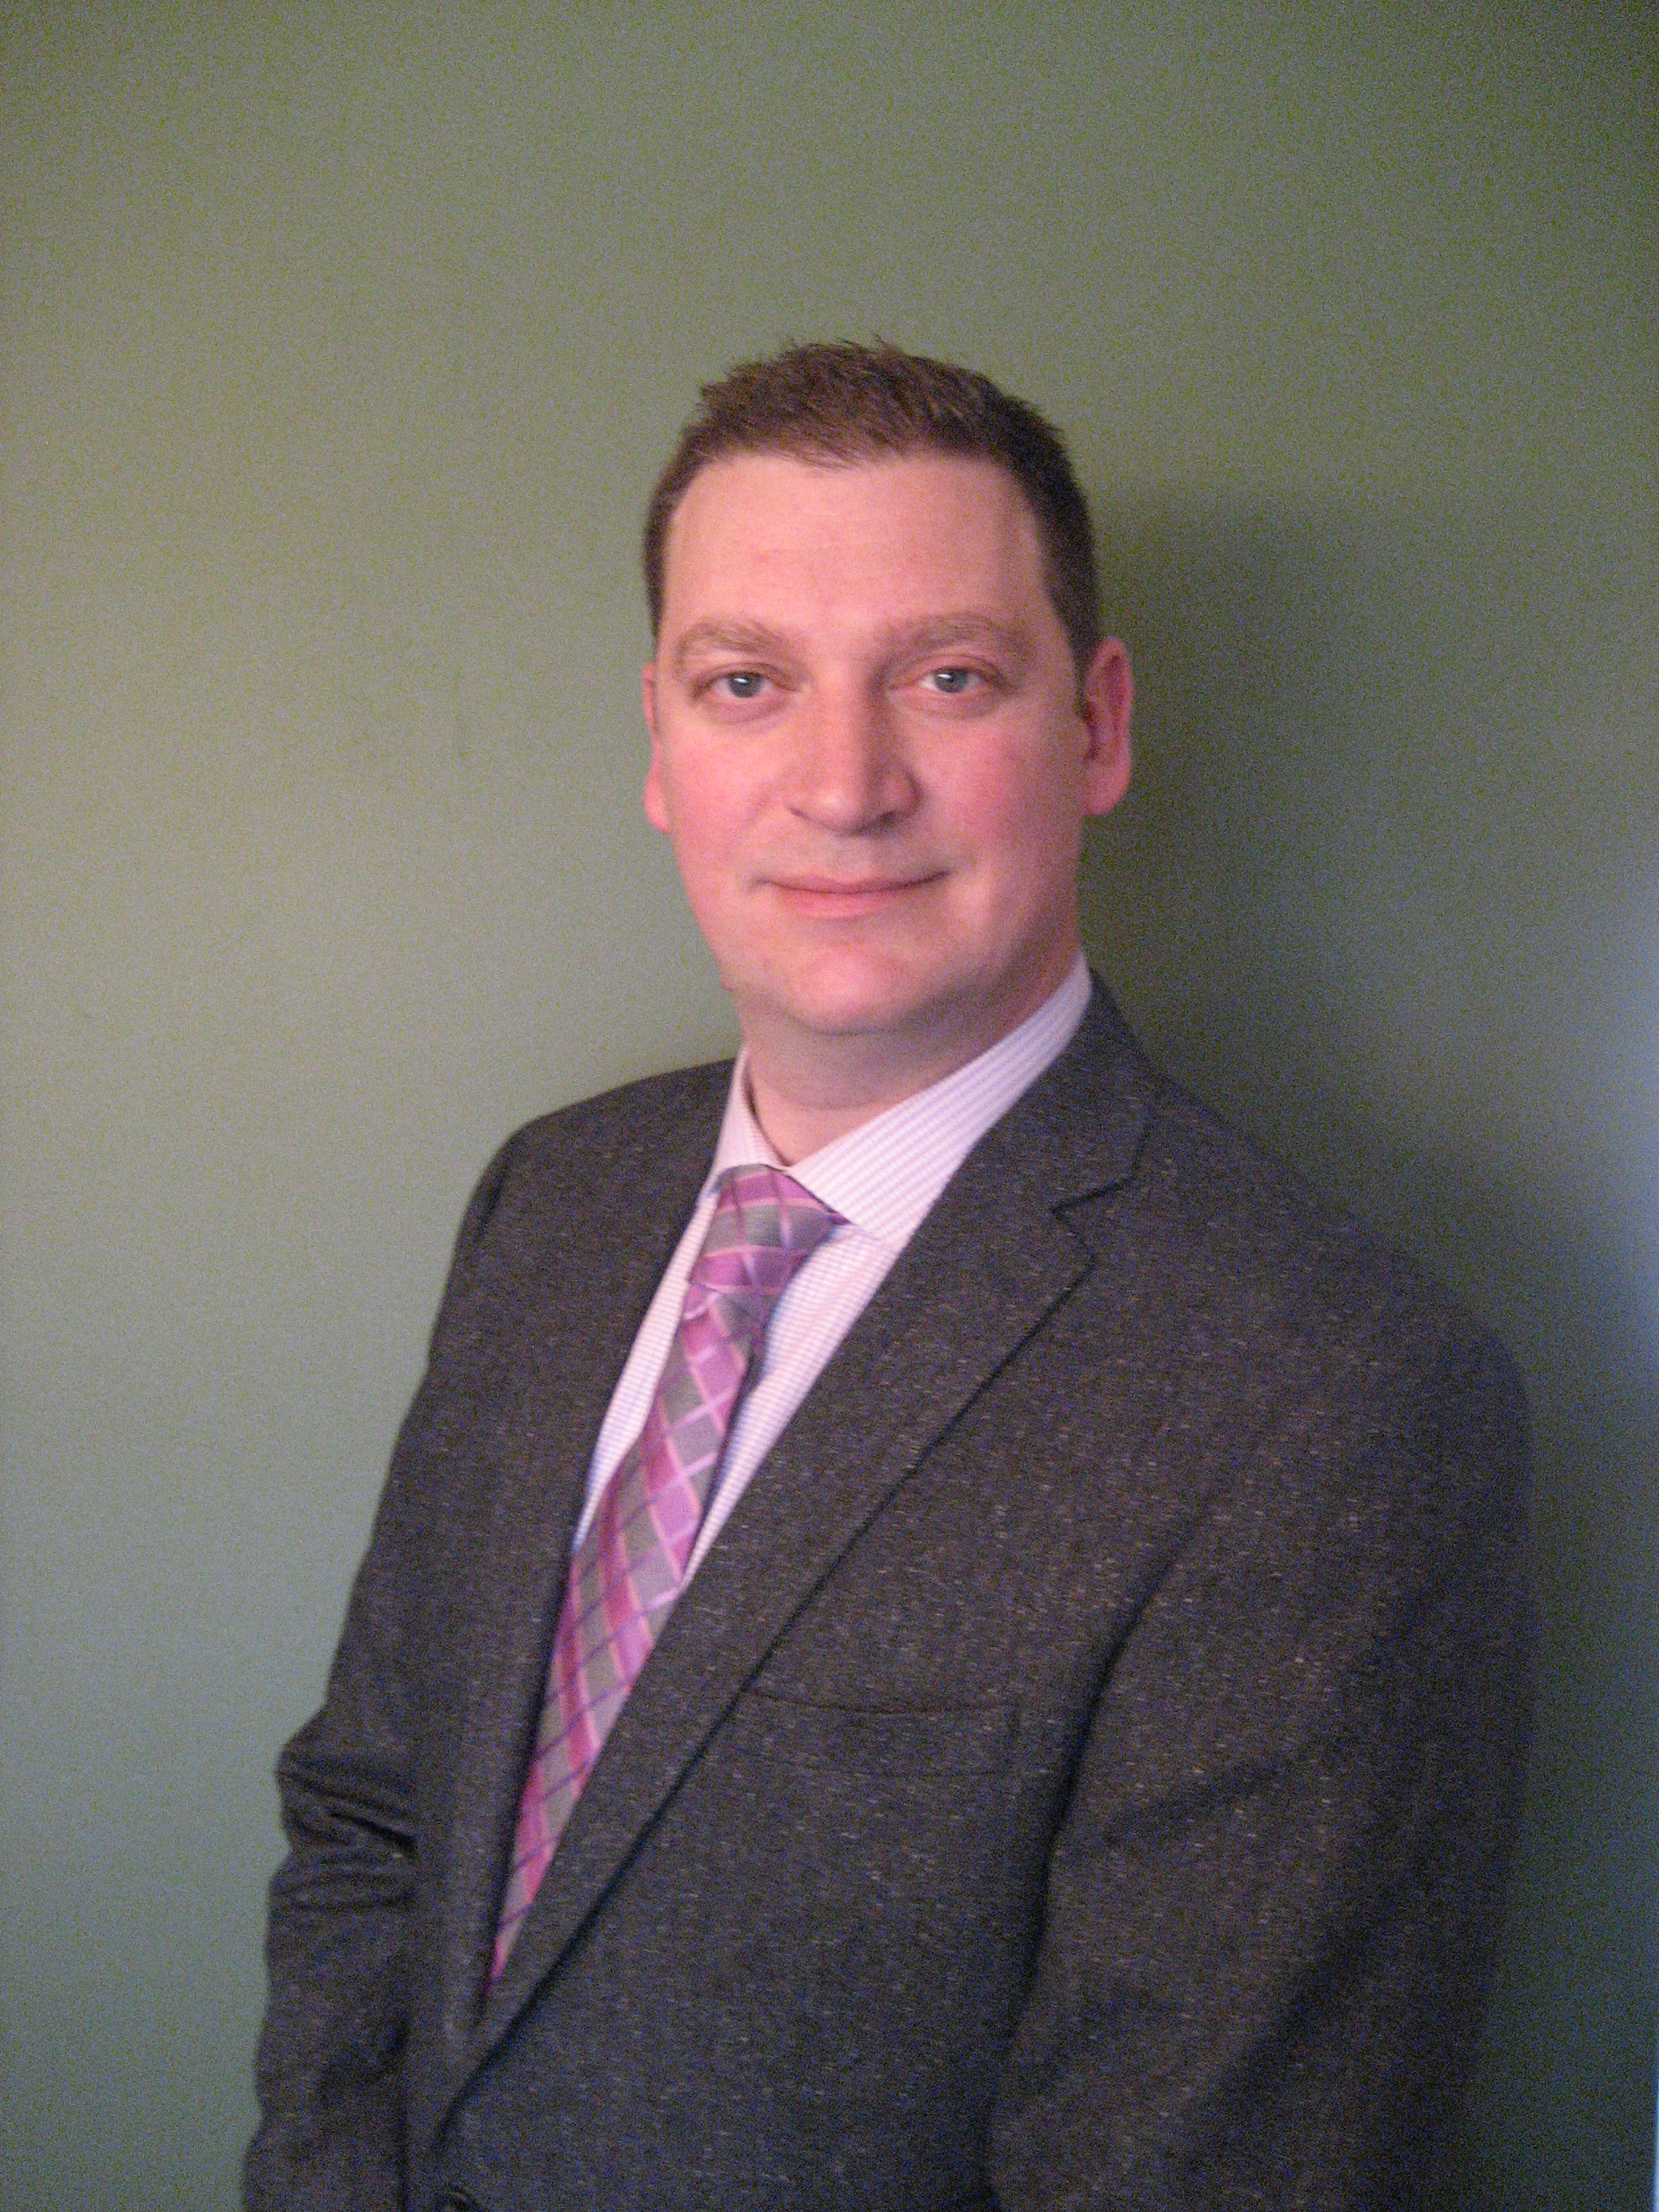 Hagen Pruemm, RICP®, financial advisor Hoffman Estates IL